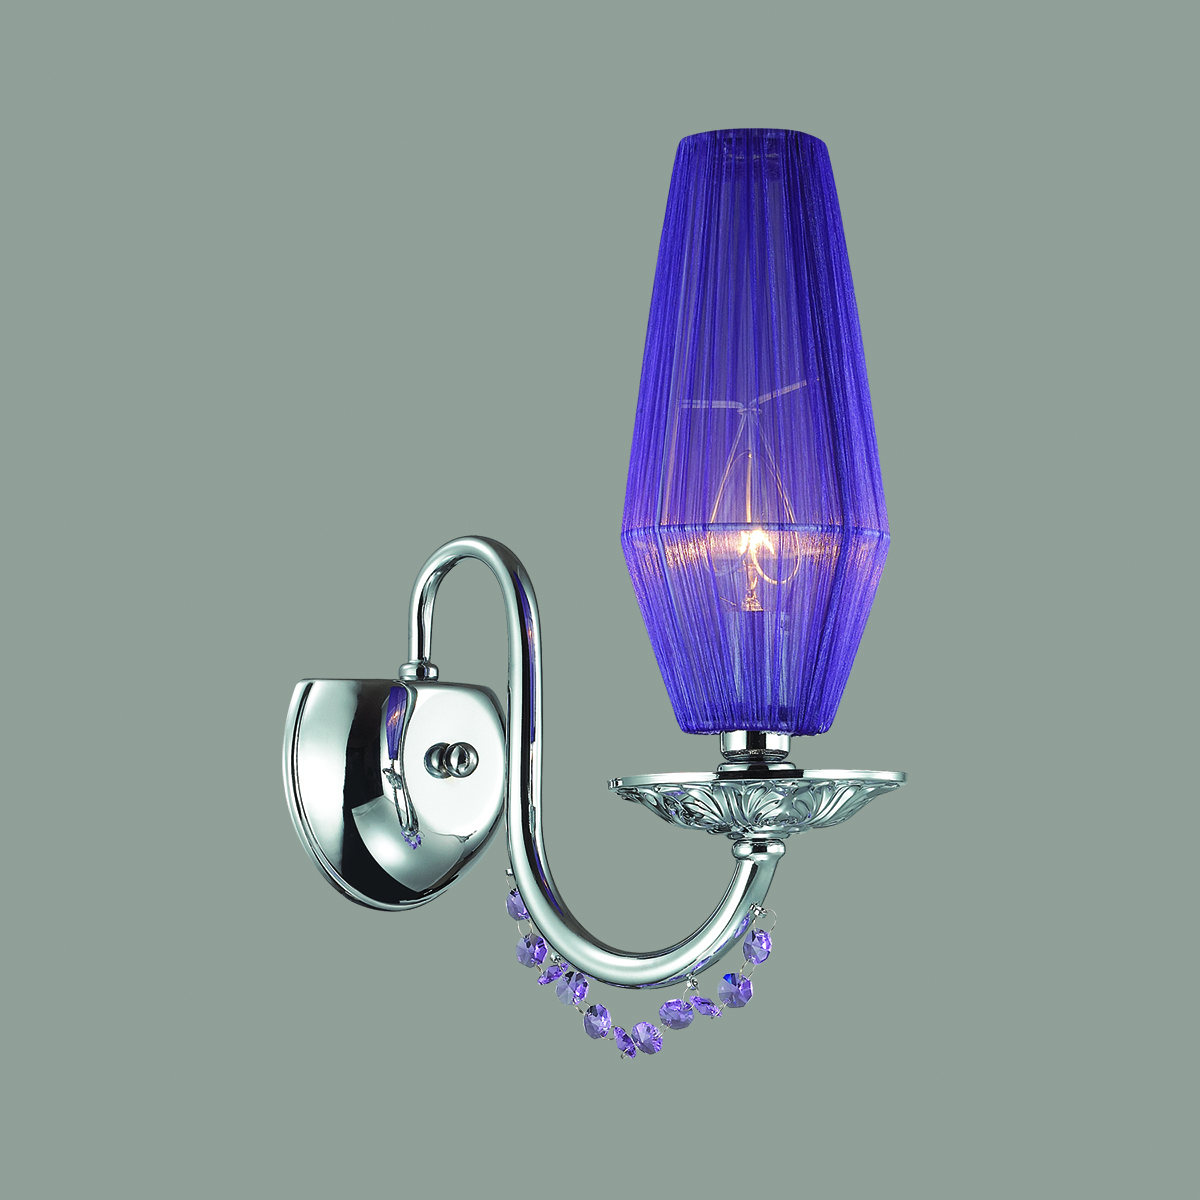 Бра ODEON LIGHT арт. 3920/1W